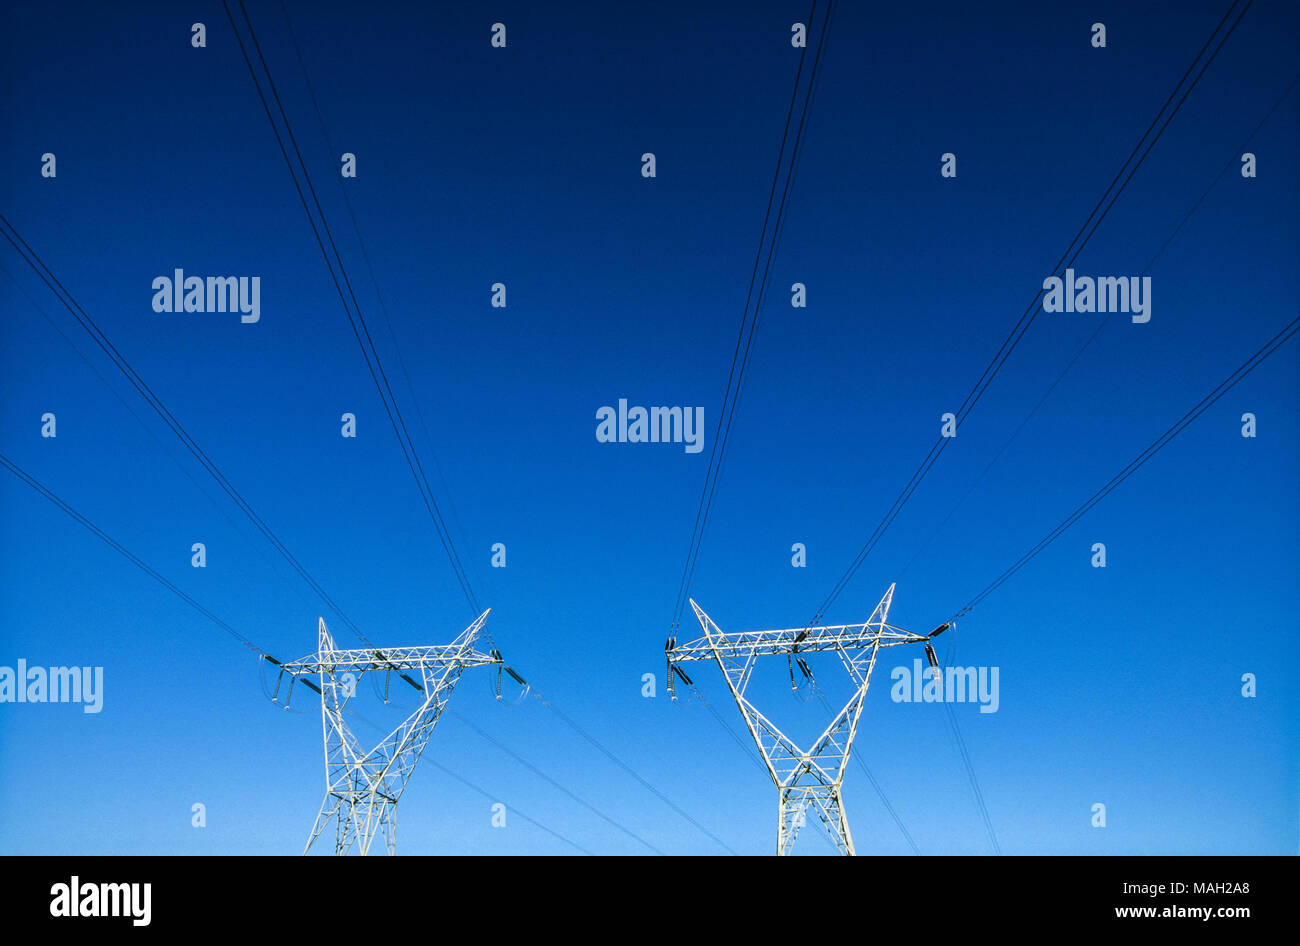 electricity transmission pylons in blue sky - Stock Image